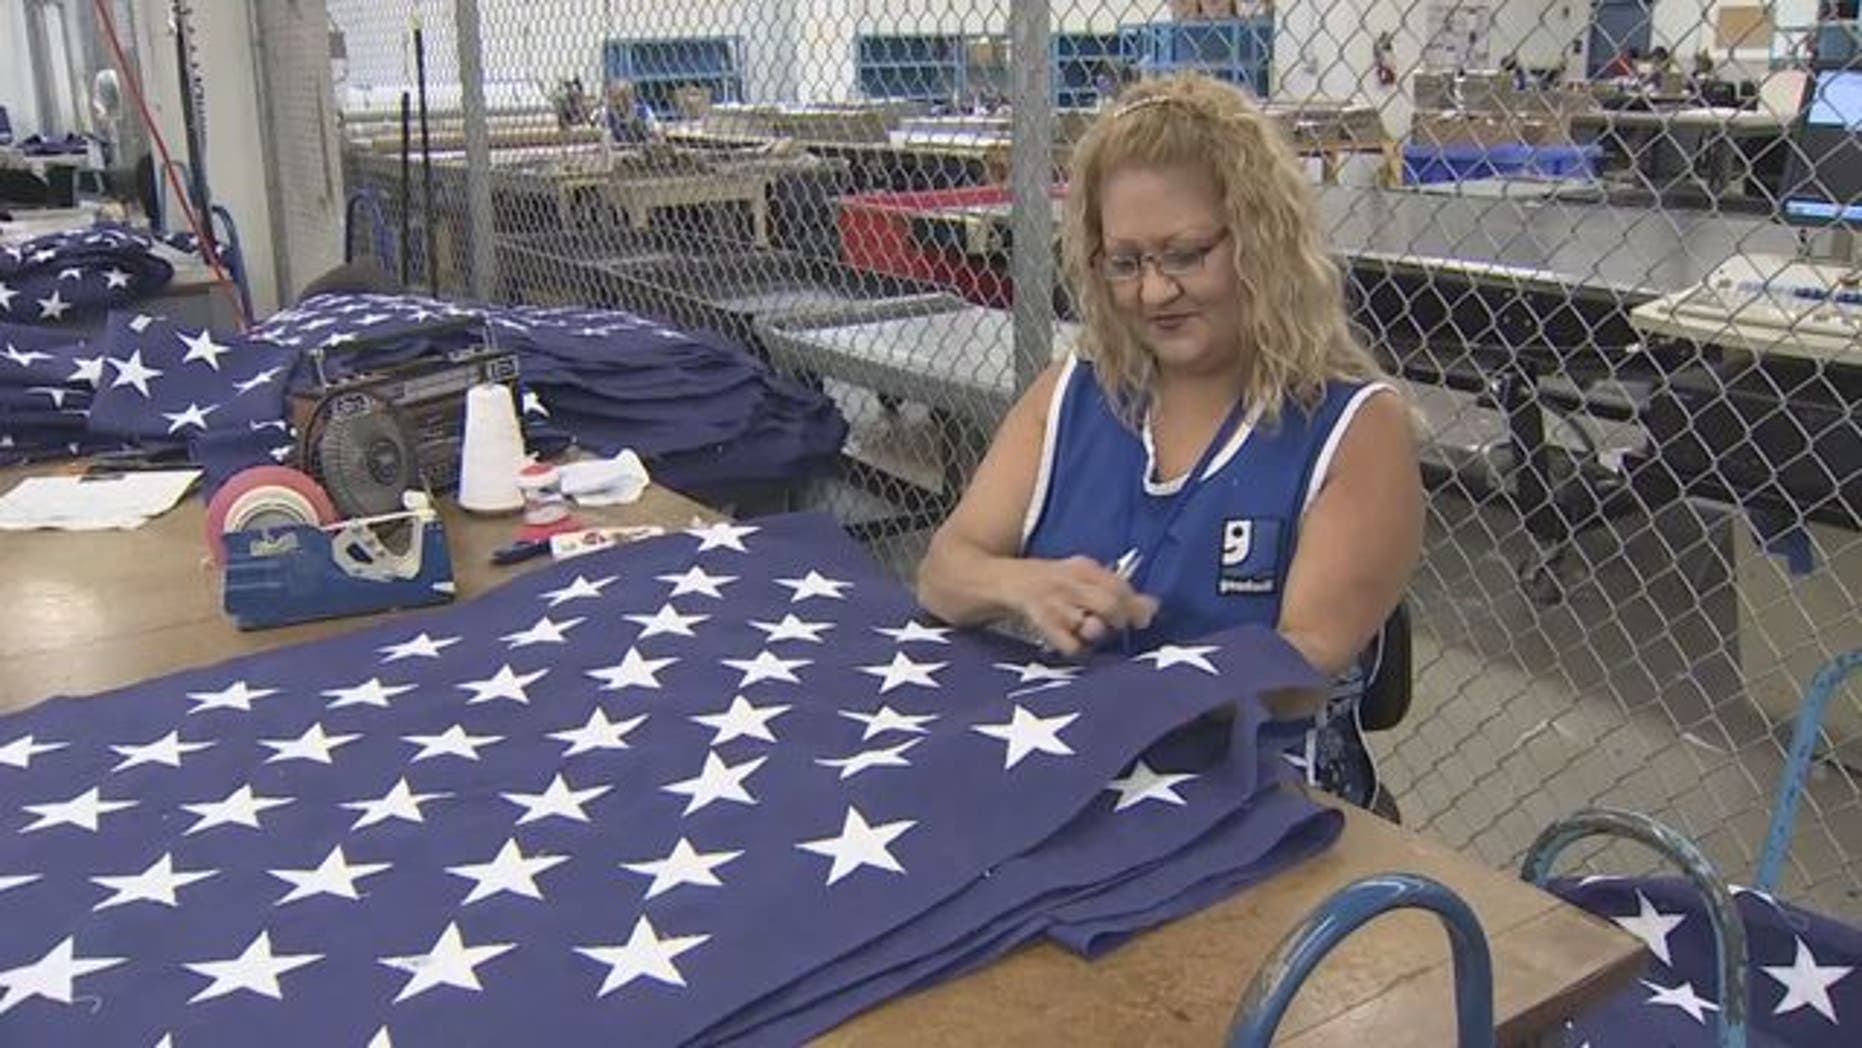 Goodwill employee works on flag at Goodwill Flag Center in South Florida. (WSVN)